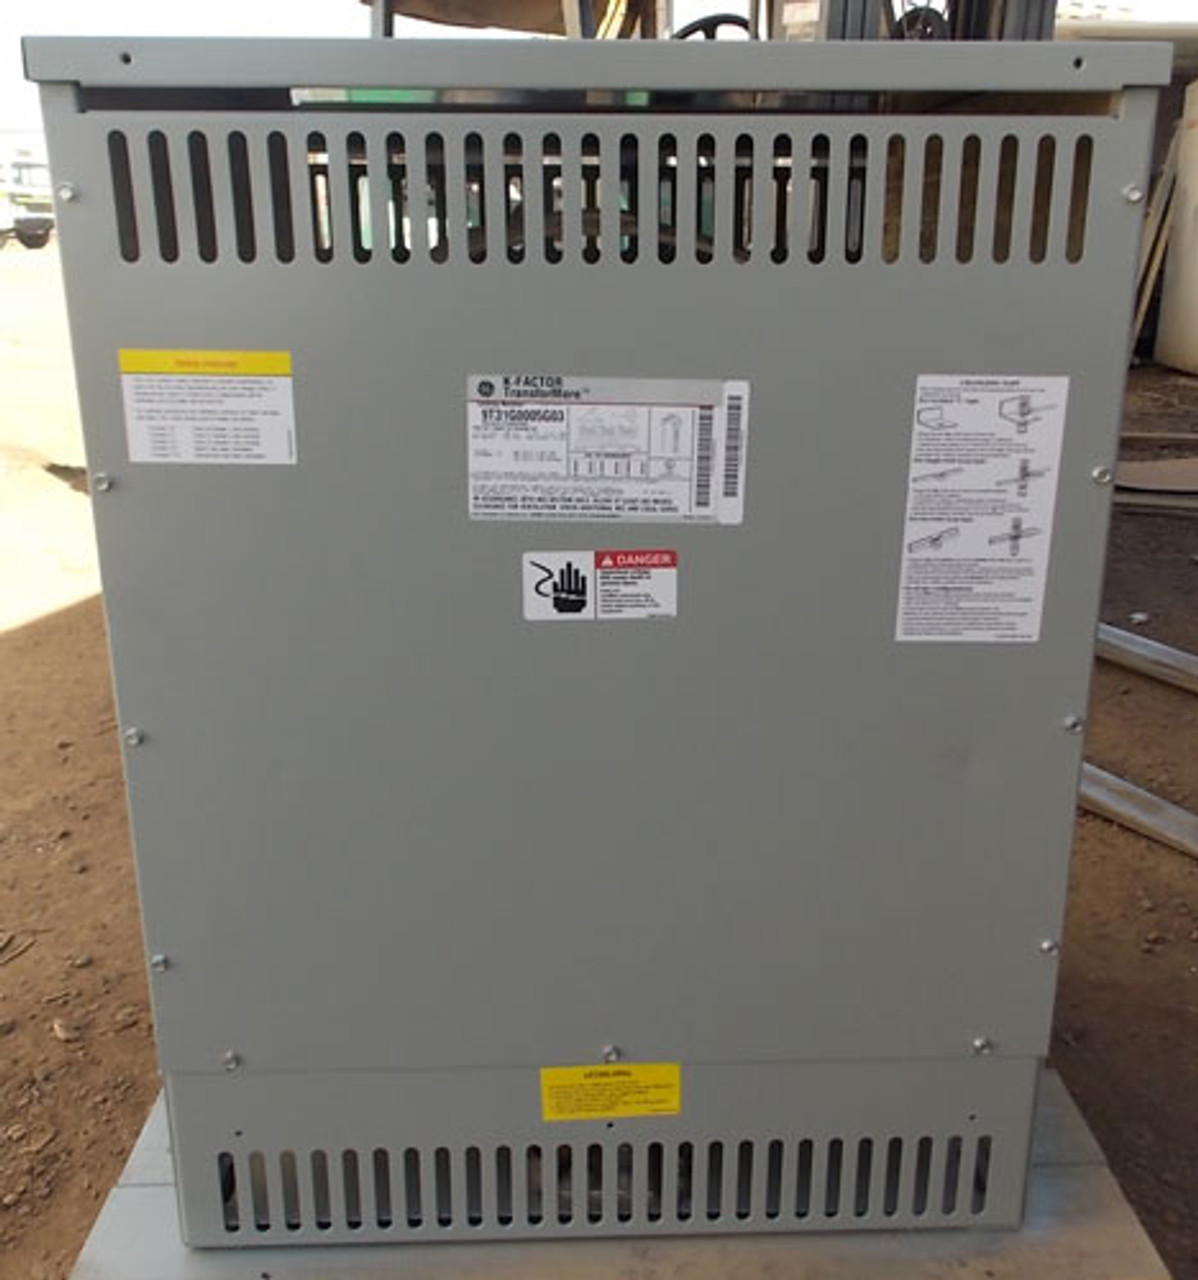 GE 9T31G0005G03 112.5 KVA 480 to 208/120V 3PH K-Factor Transformer N1 - Reconditioned